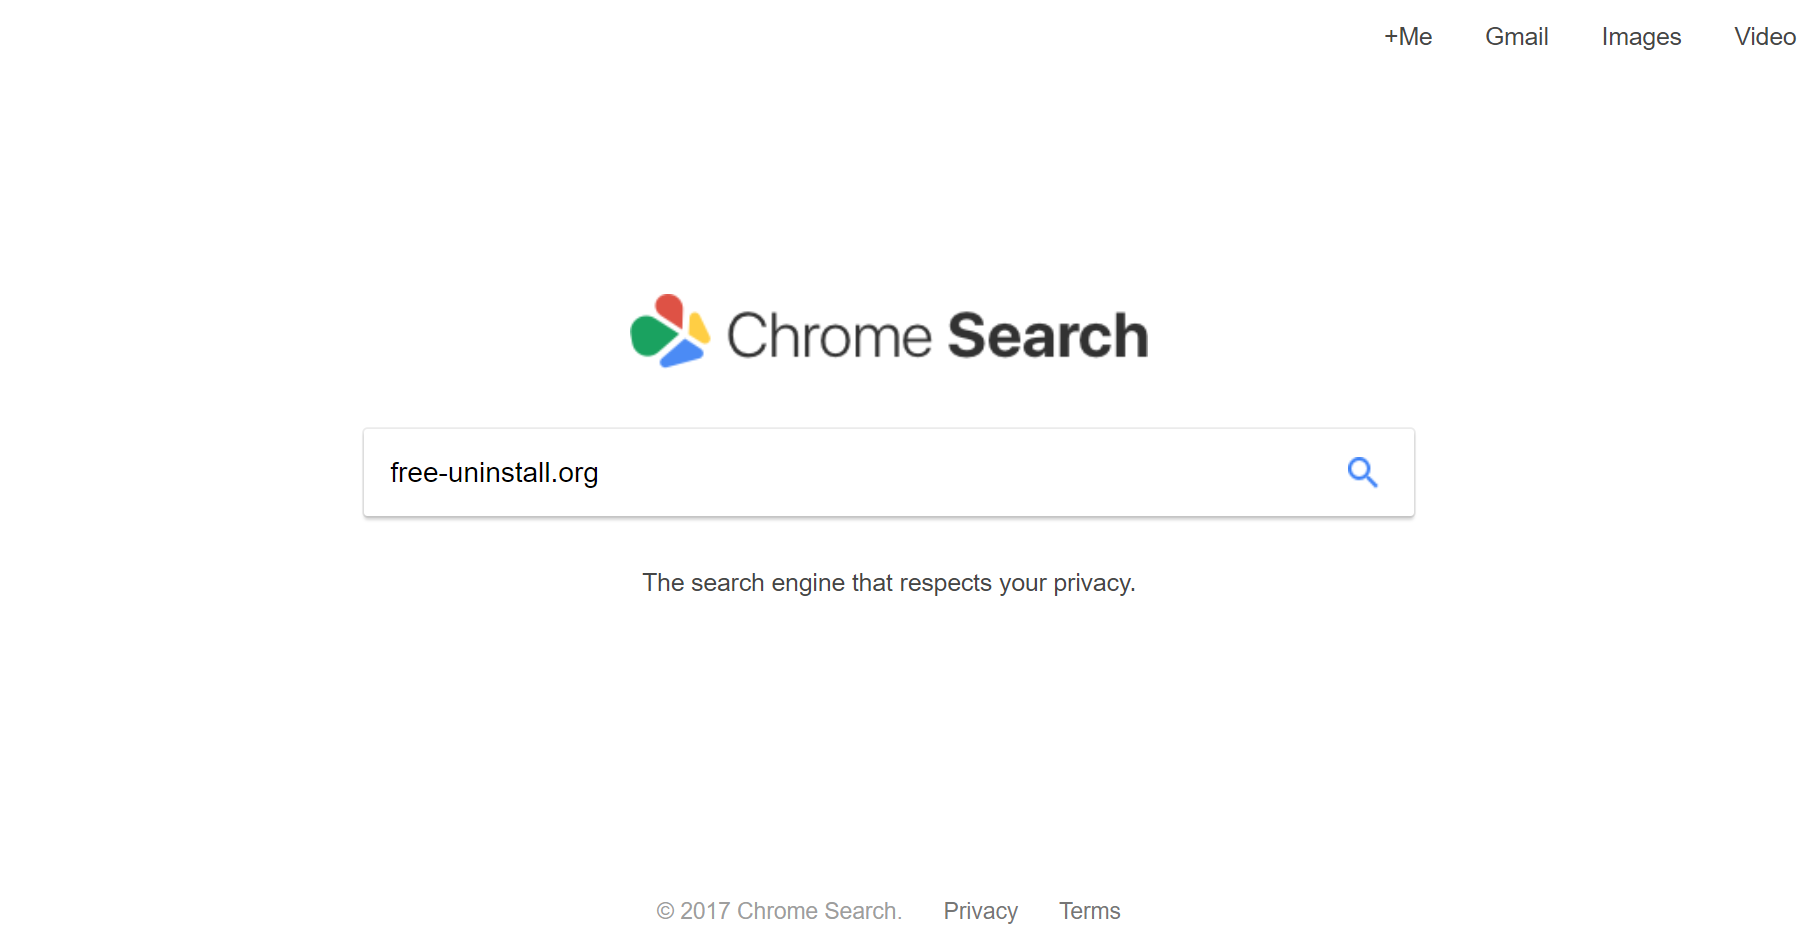 ads by Chromesearch.today